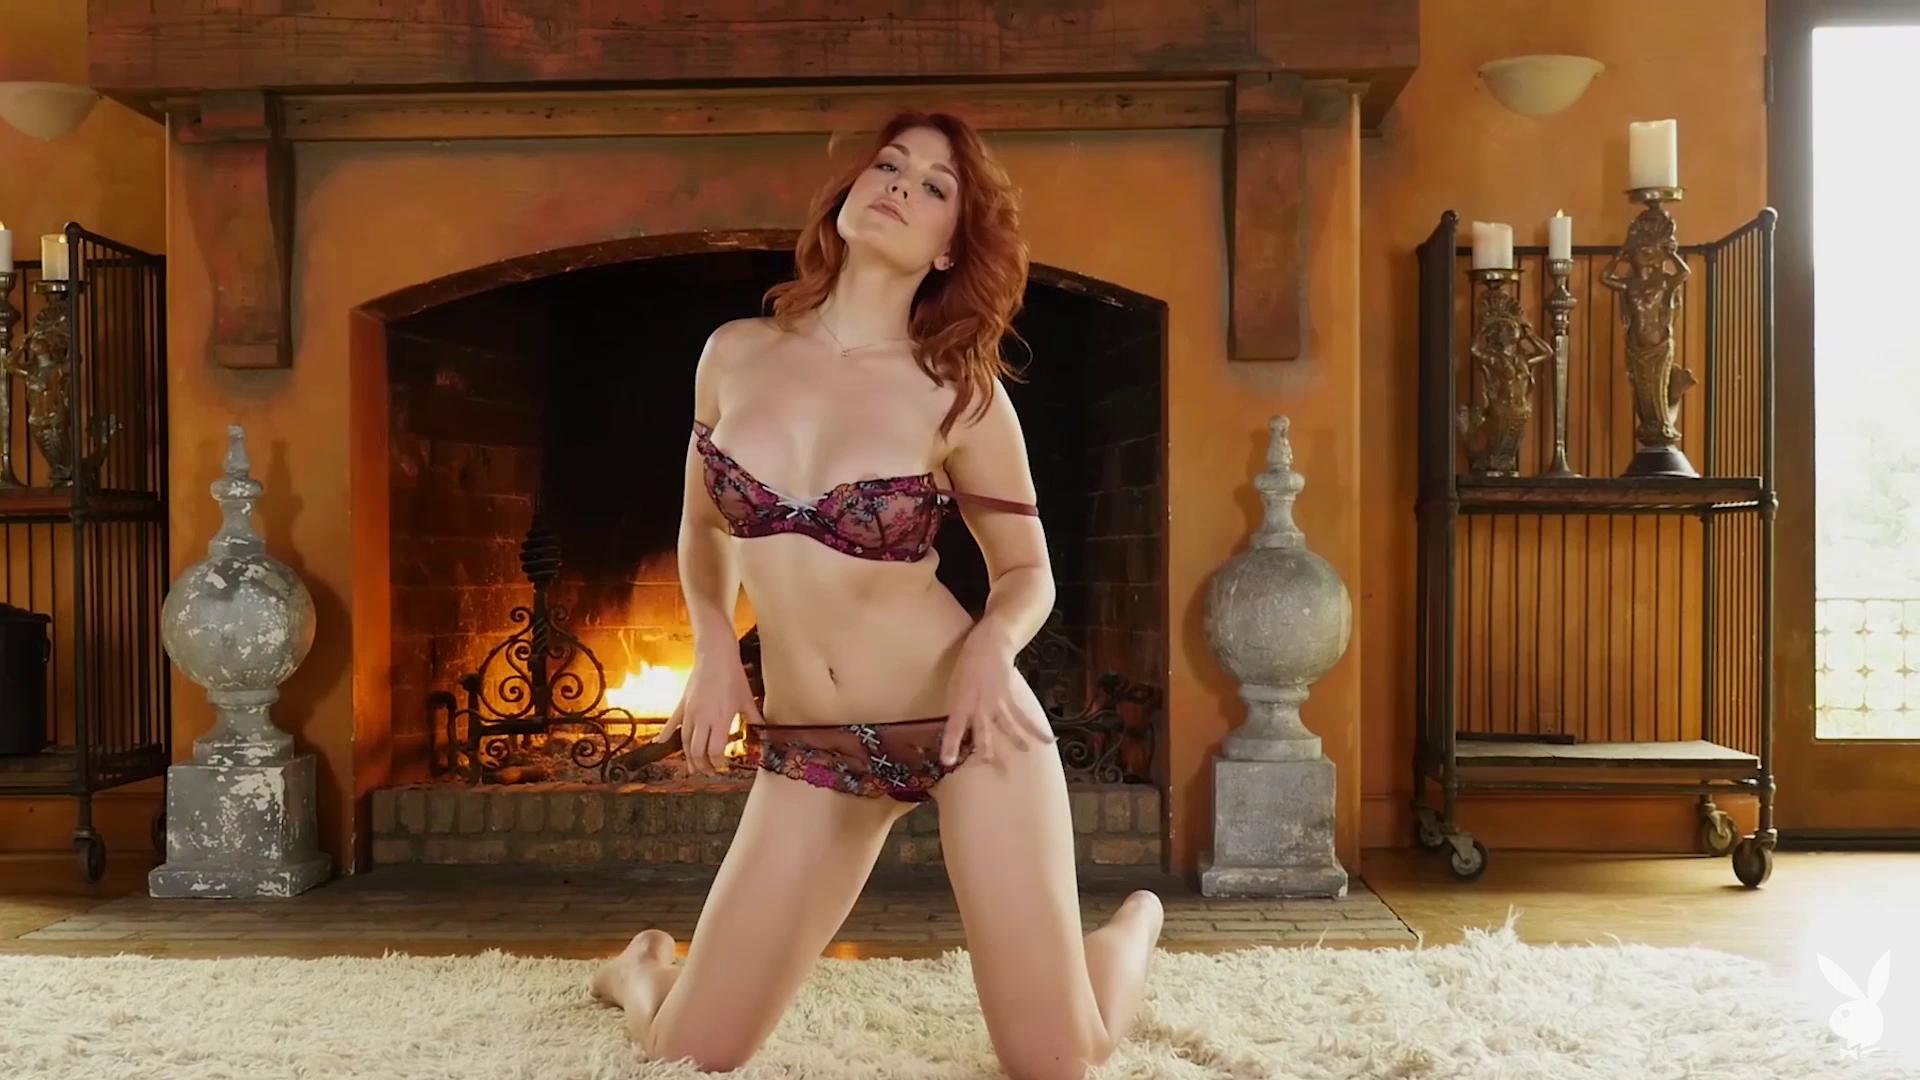 PlayboyPlus – Mashup Winter Break Vol 1